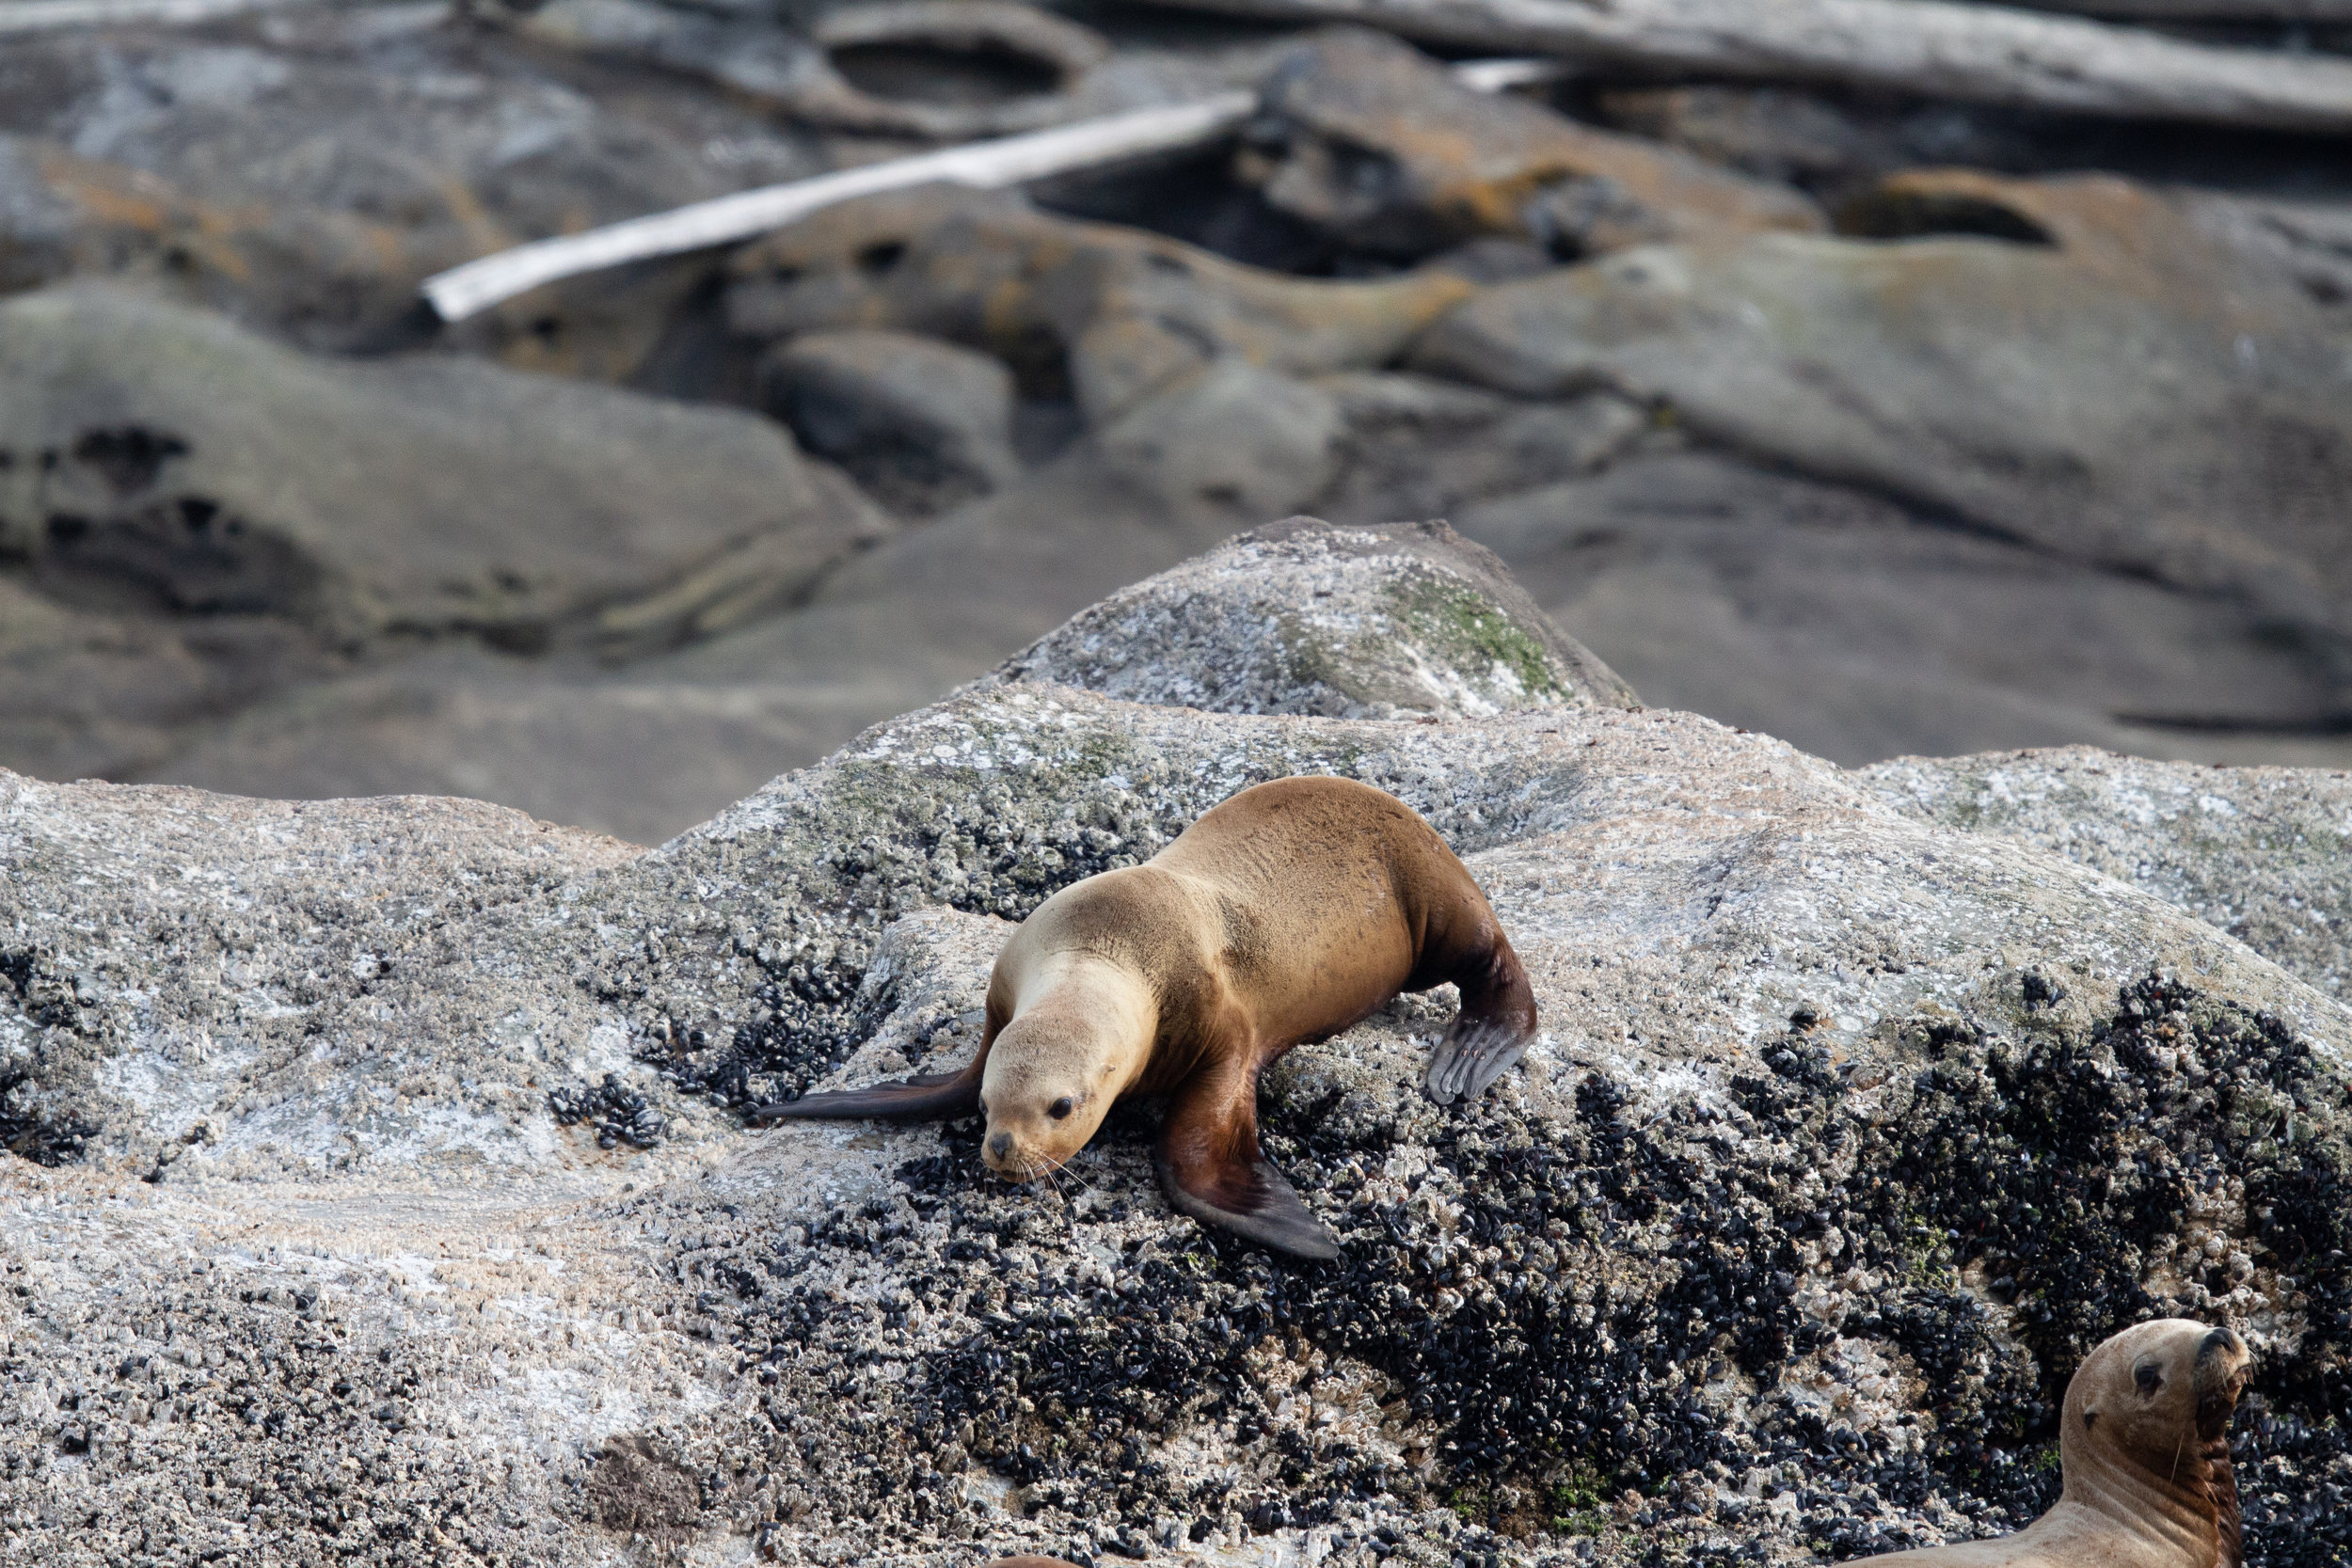 A steller sea lion clambering over a barnacle covered haul out. Photo by Natalie Reichenbacher